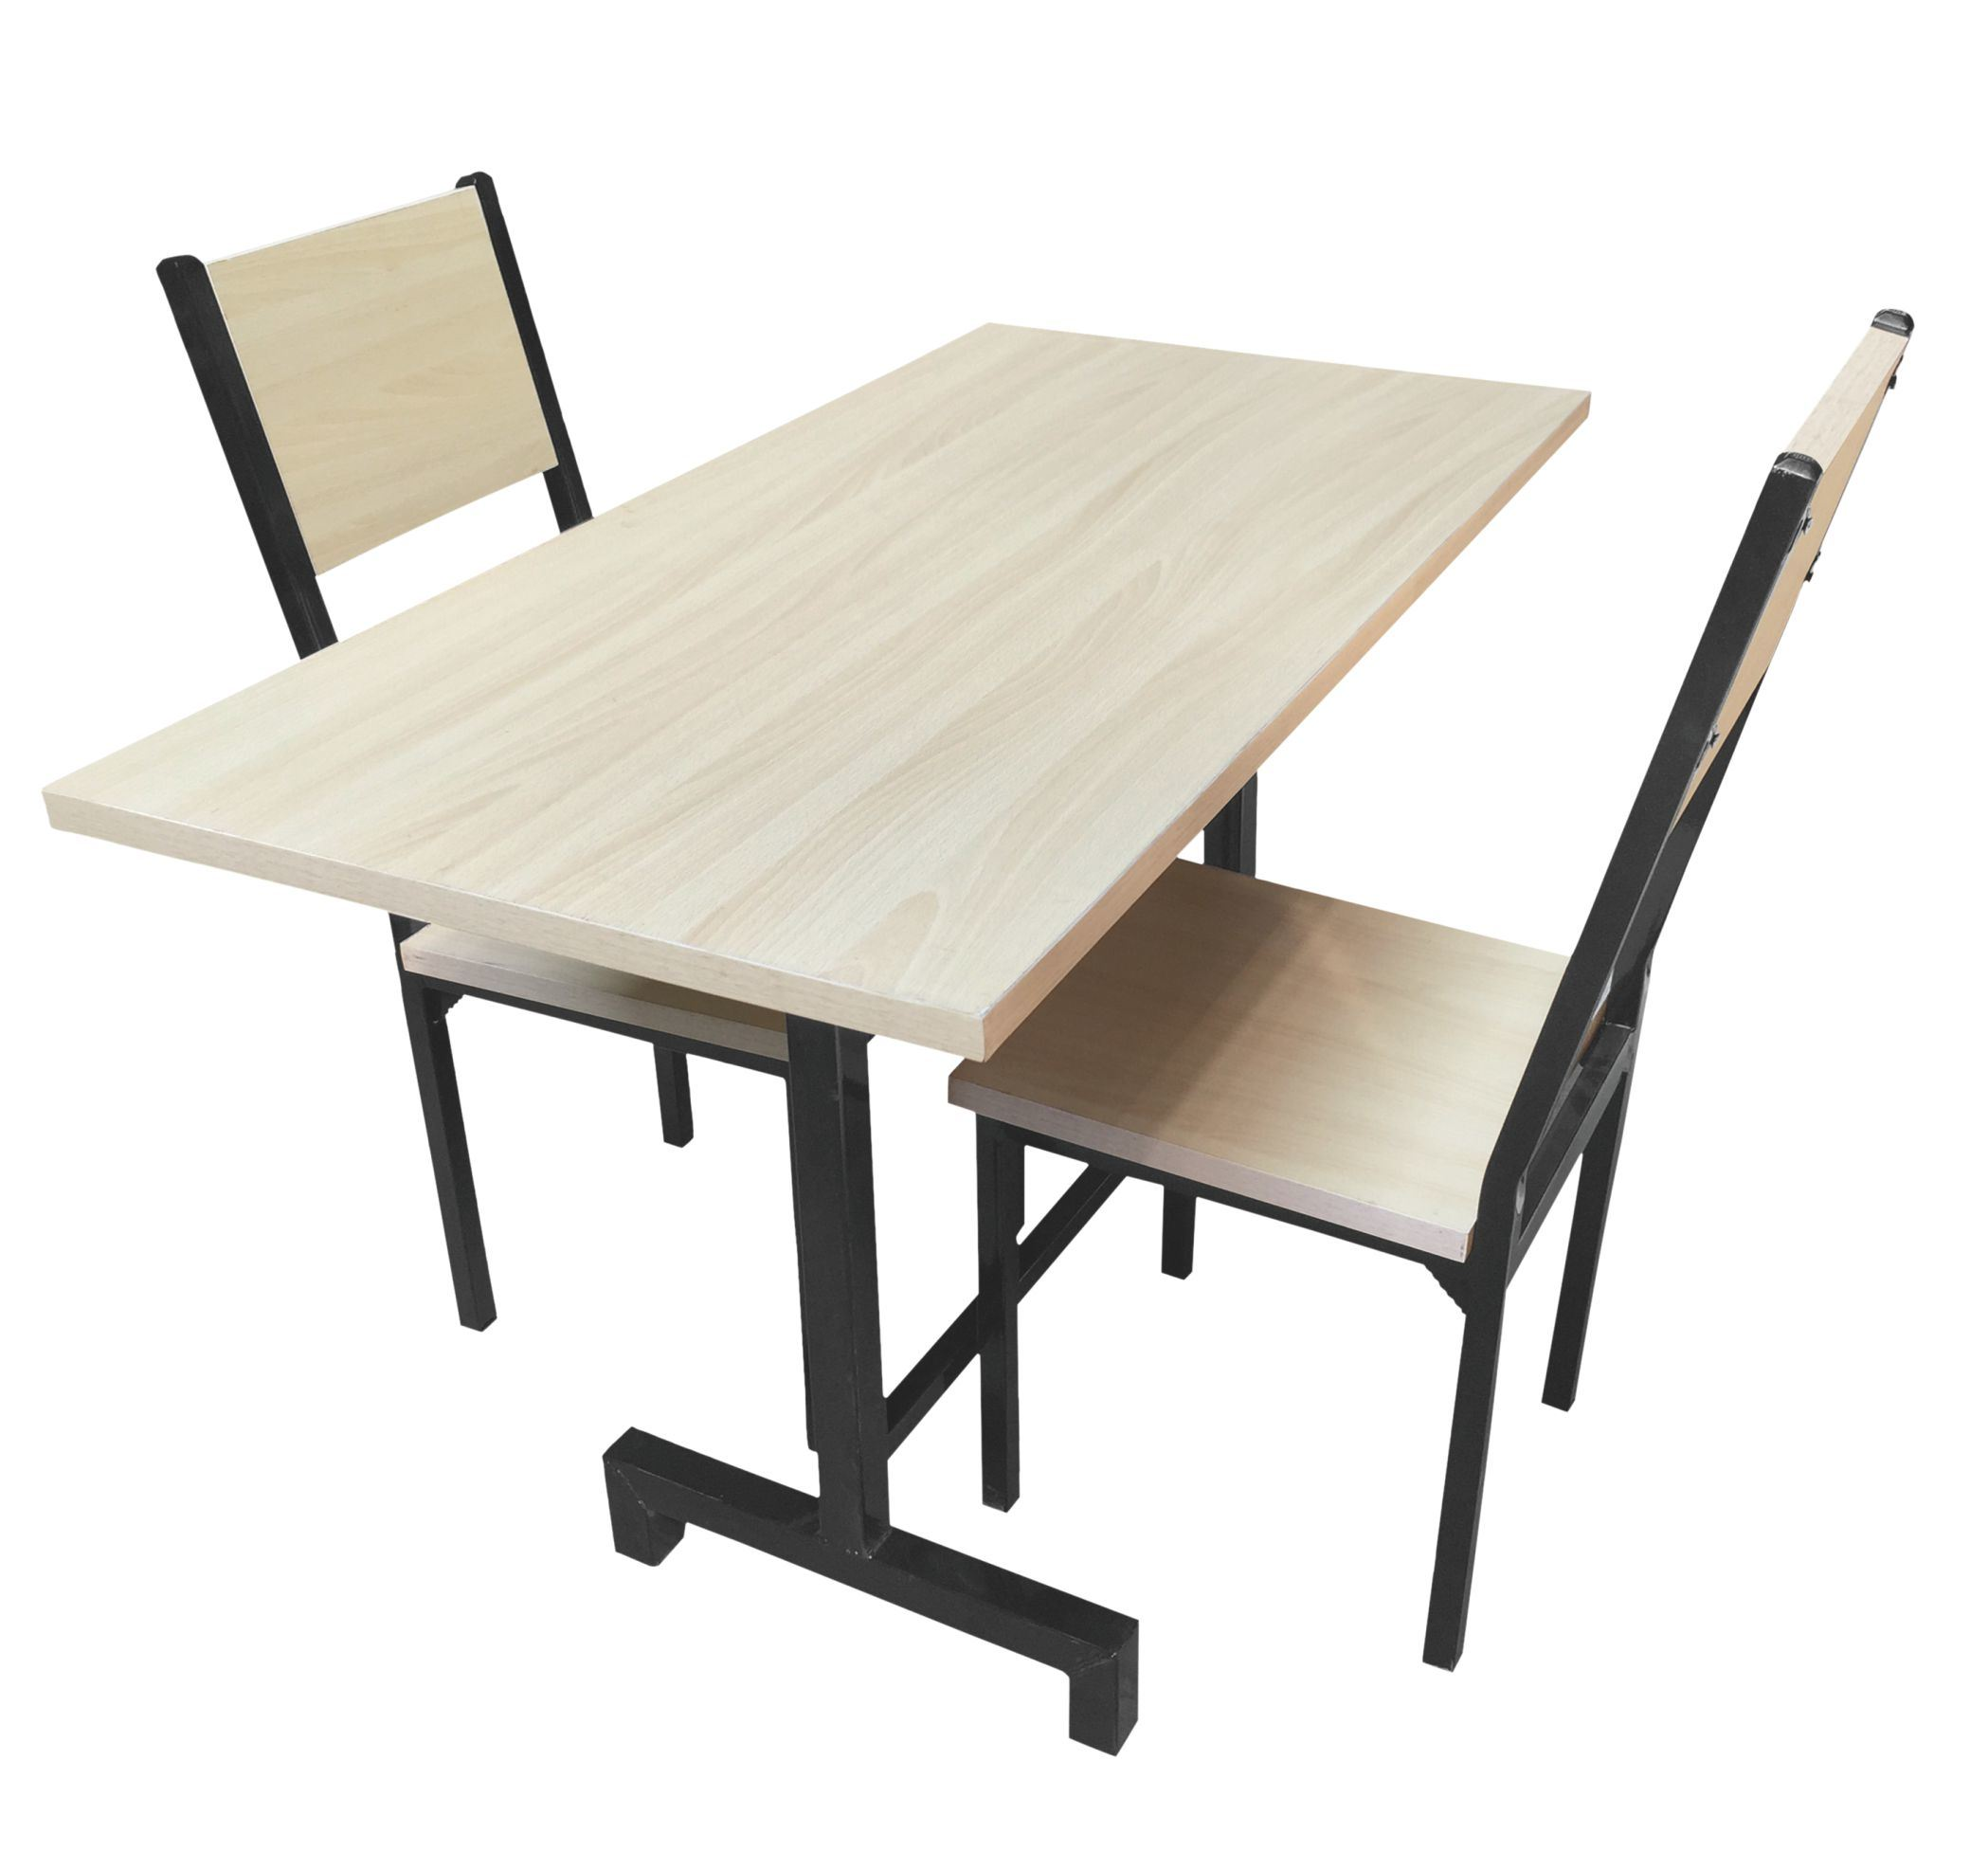 China Modern Regular 50 Square Dining Table Set 1 Table With 2 Chairs Metal Leg With Top Board Cheap Dining Set Retangle Table Set China Dining Table Wooden Board Table